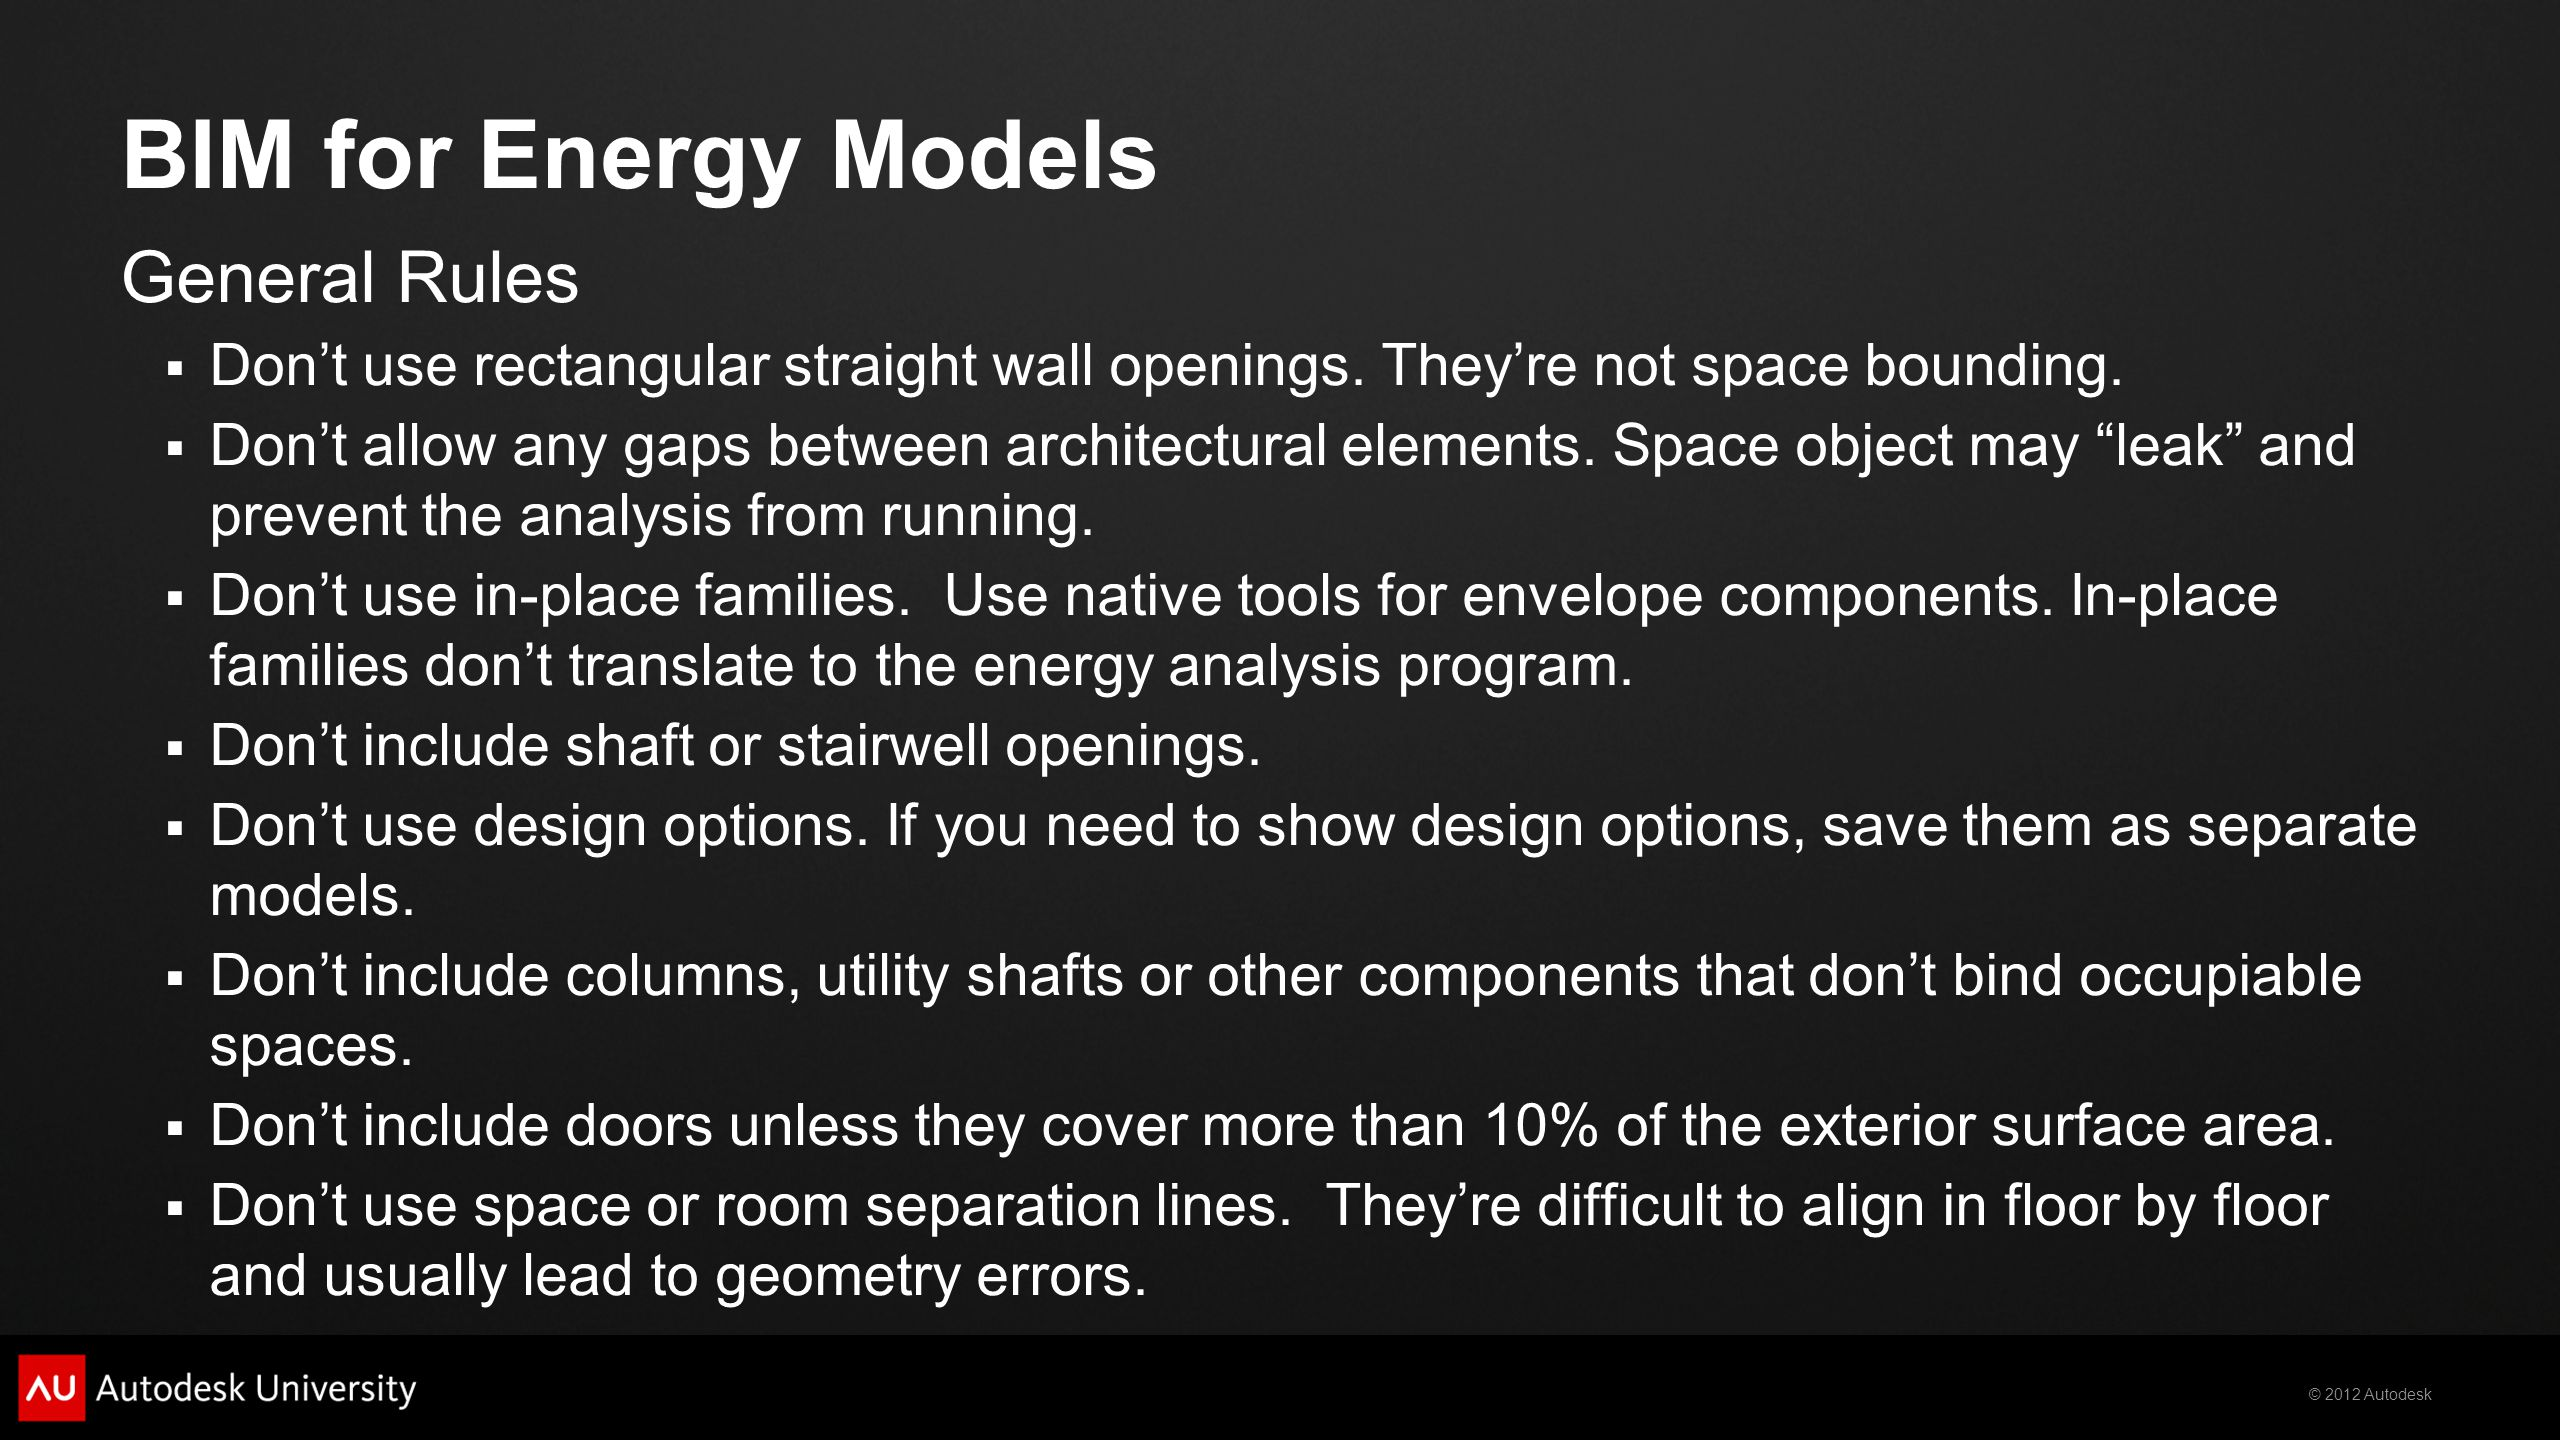 BIM for Energy Models General Rules